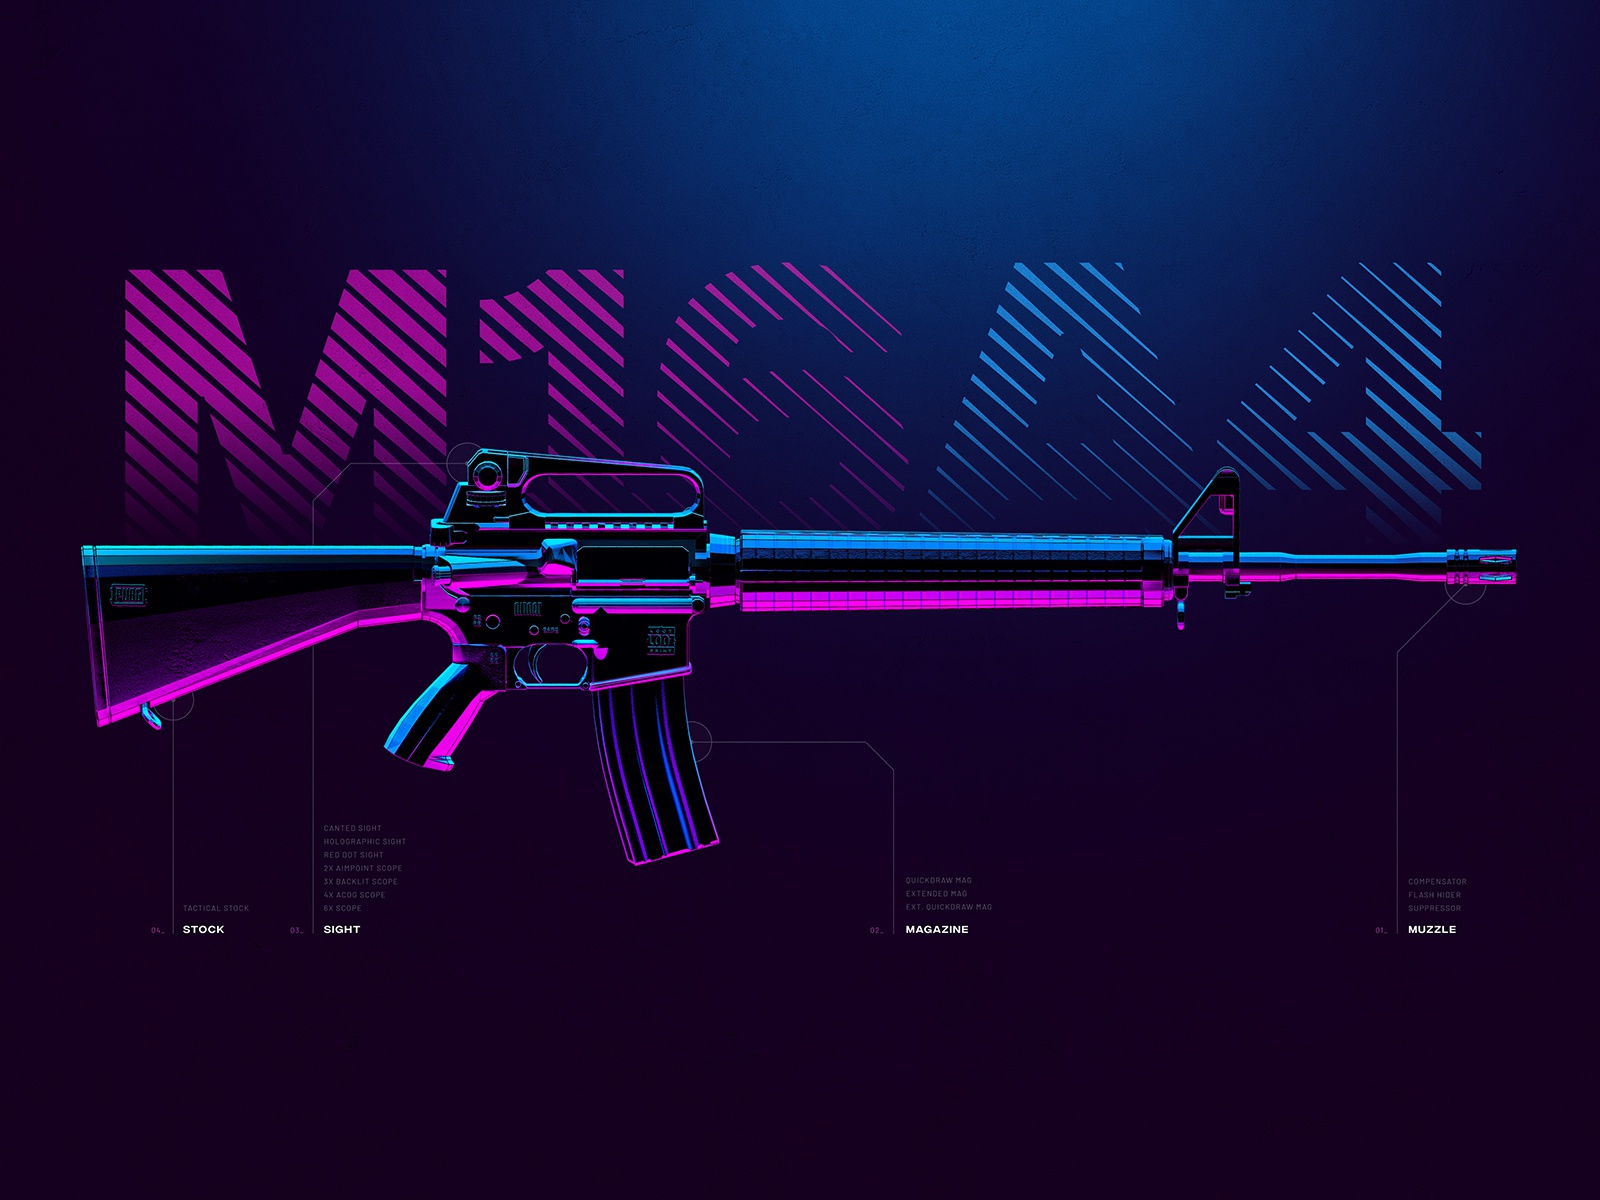 M16A4 - Battleground Weapons Collection - PUBG by Konstantin Meier on Dribbble